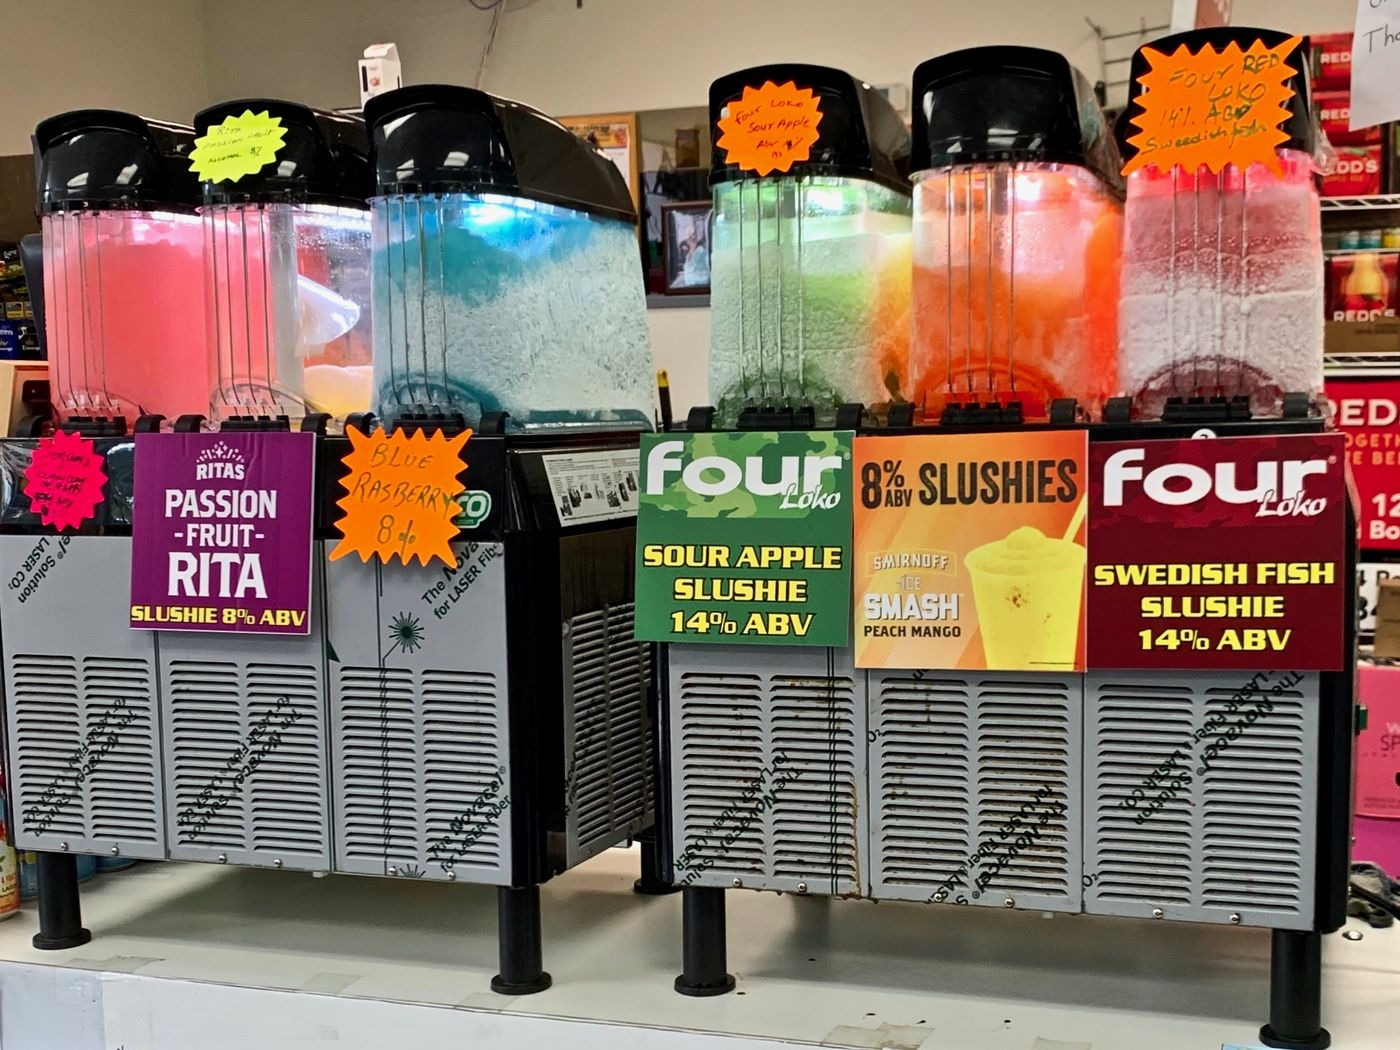 Delaware County Beer Distributors Now Offer a Rainbow of Malt Slushies